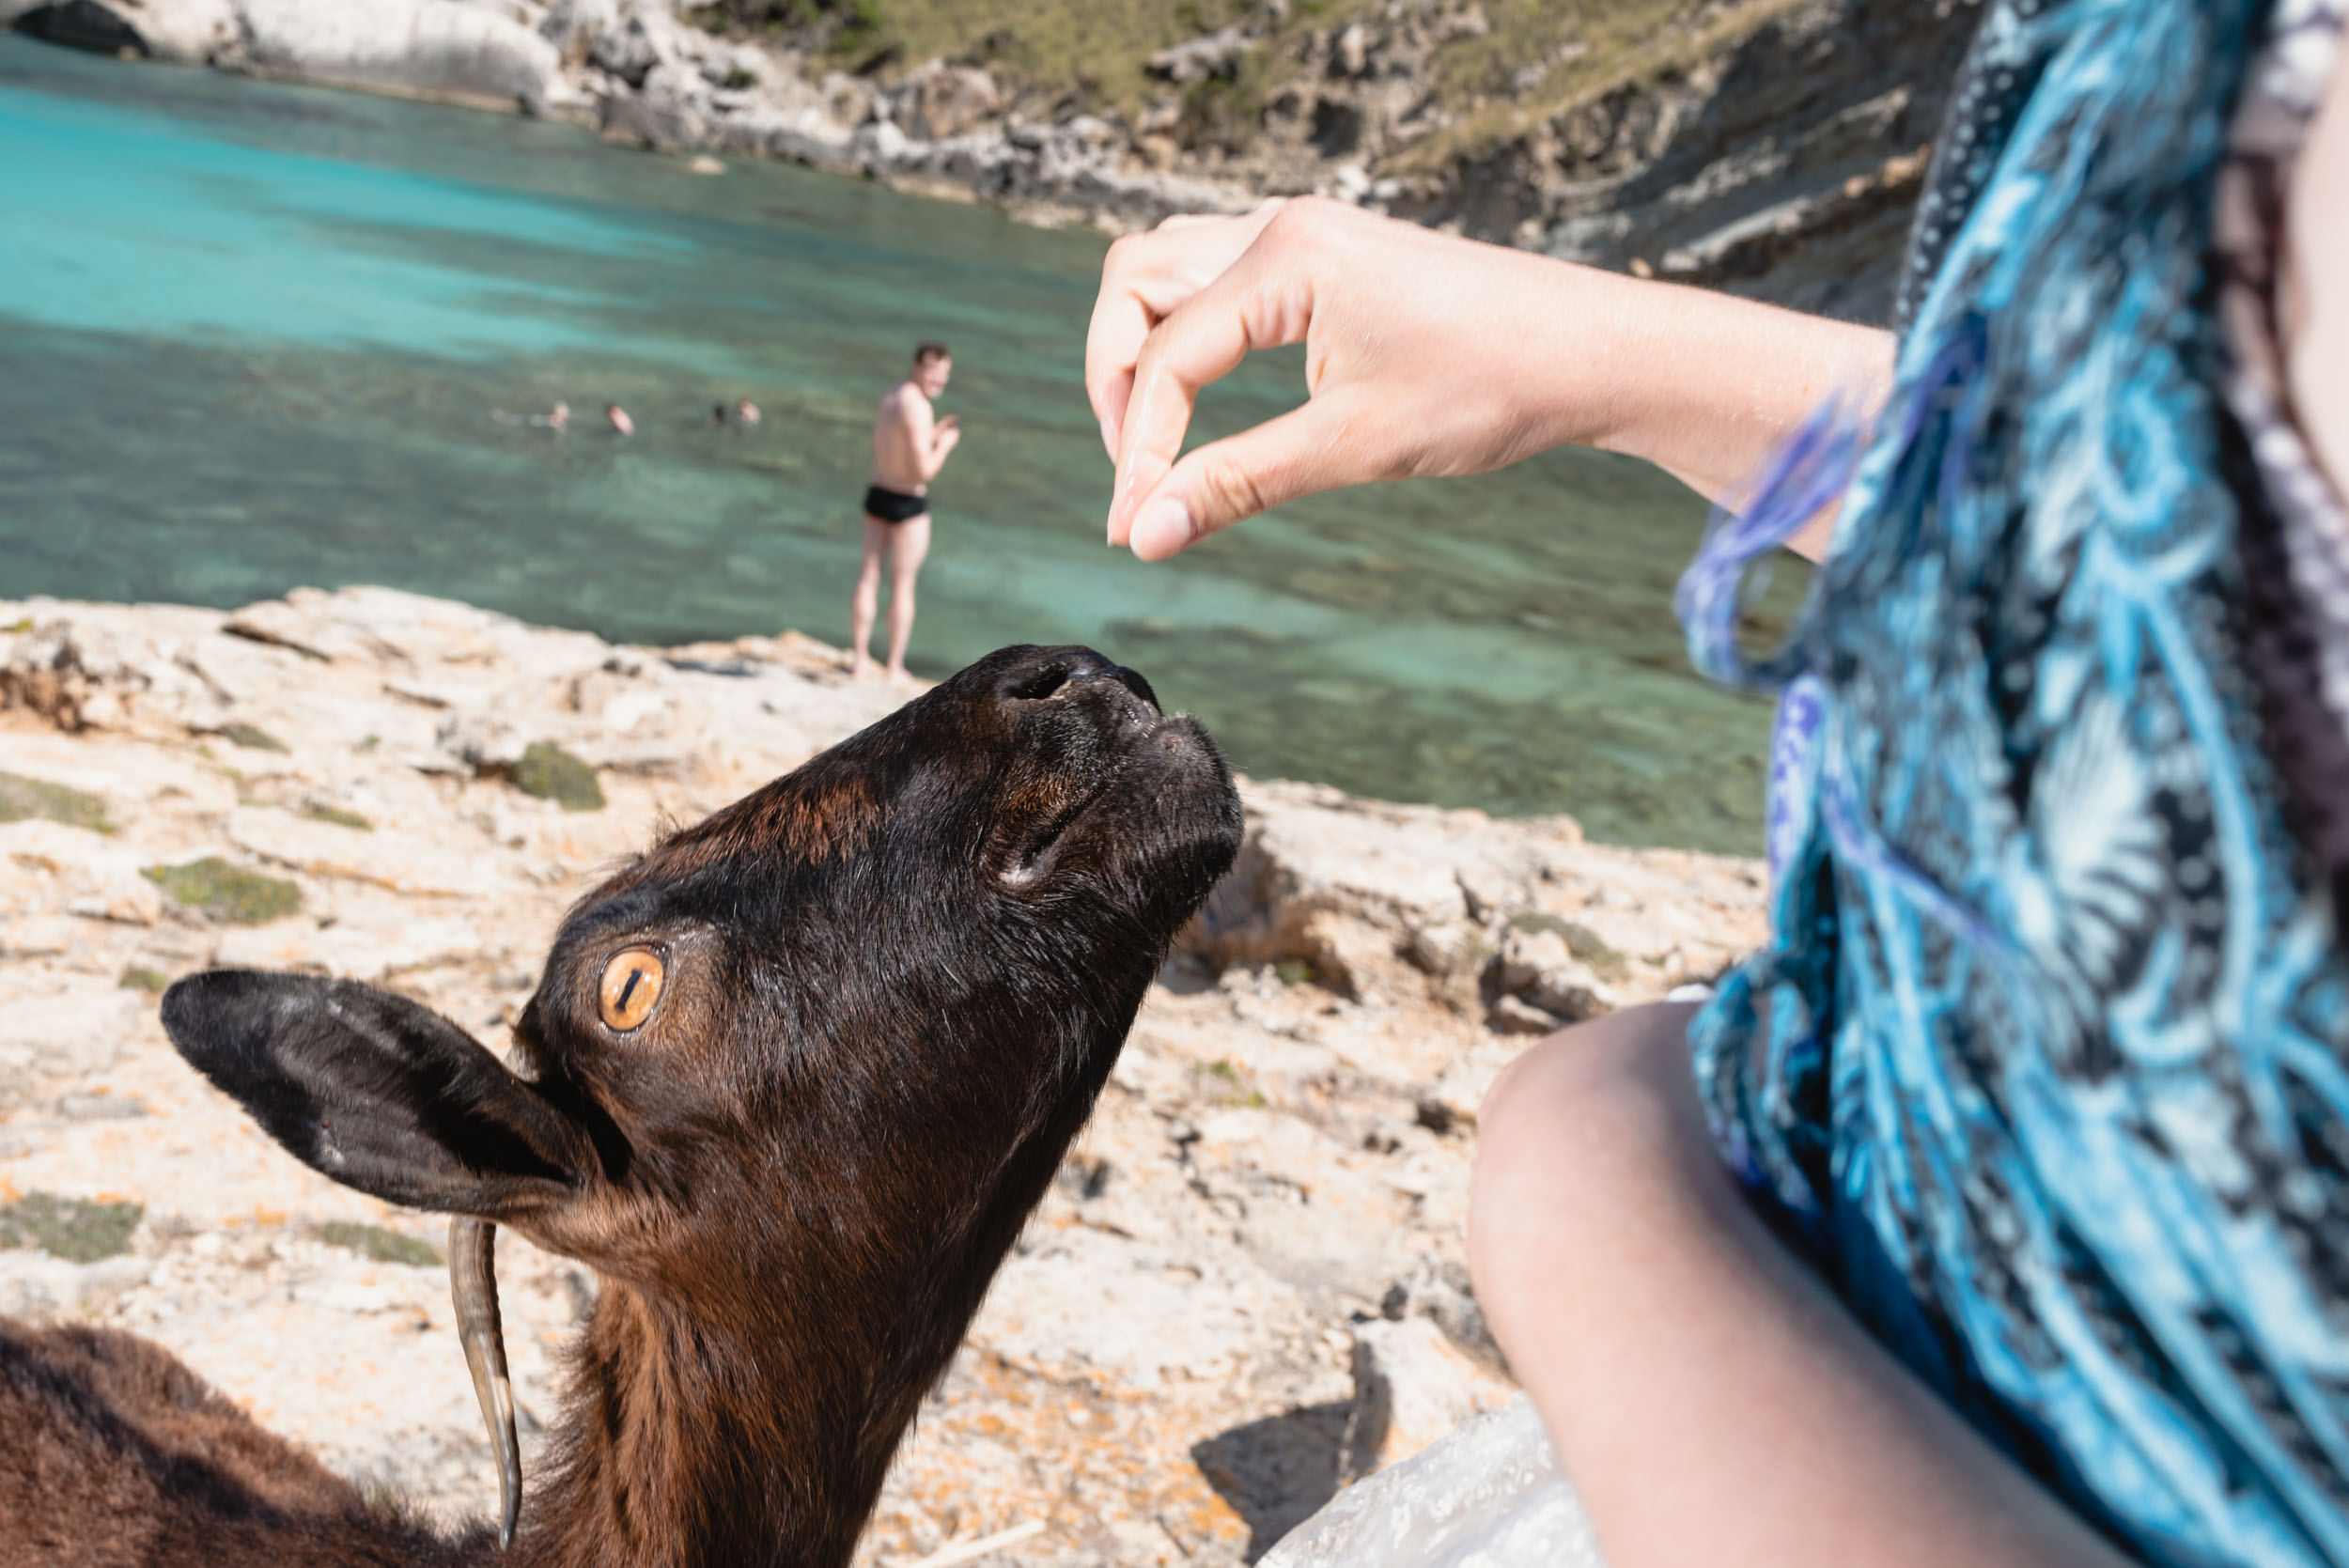 Feeding goat at Cala Figuera